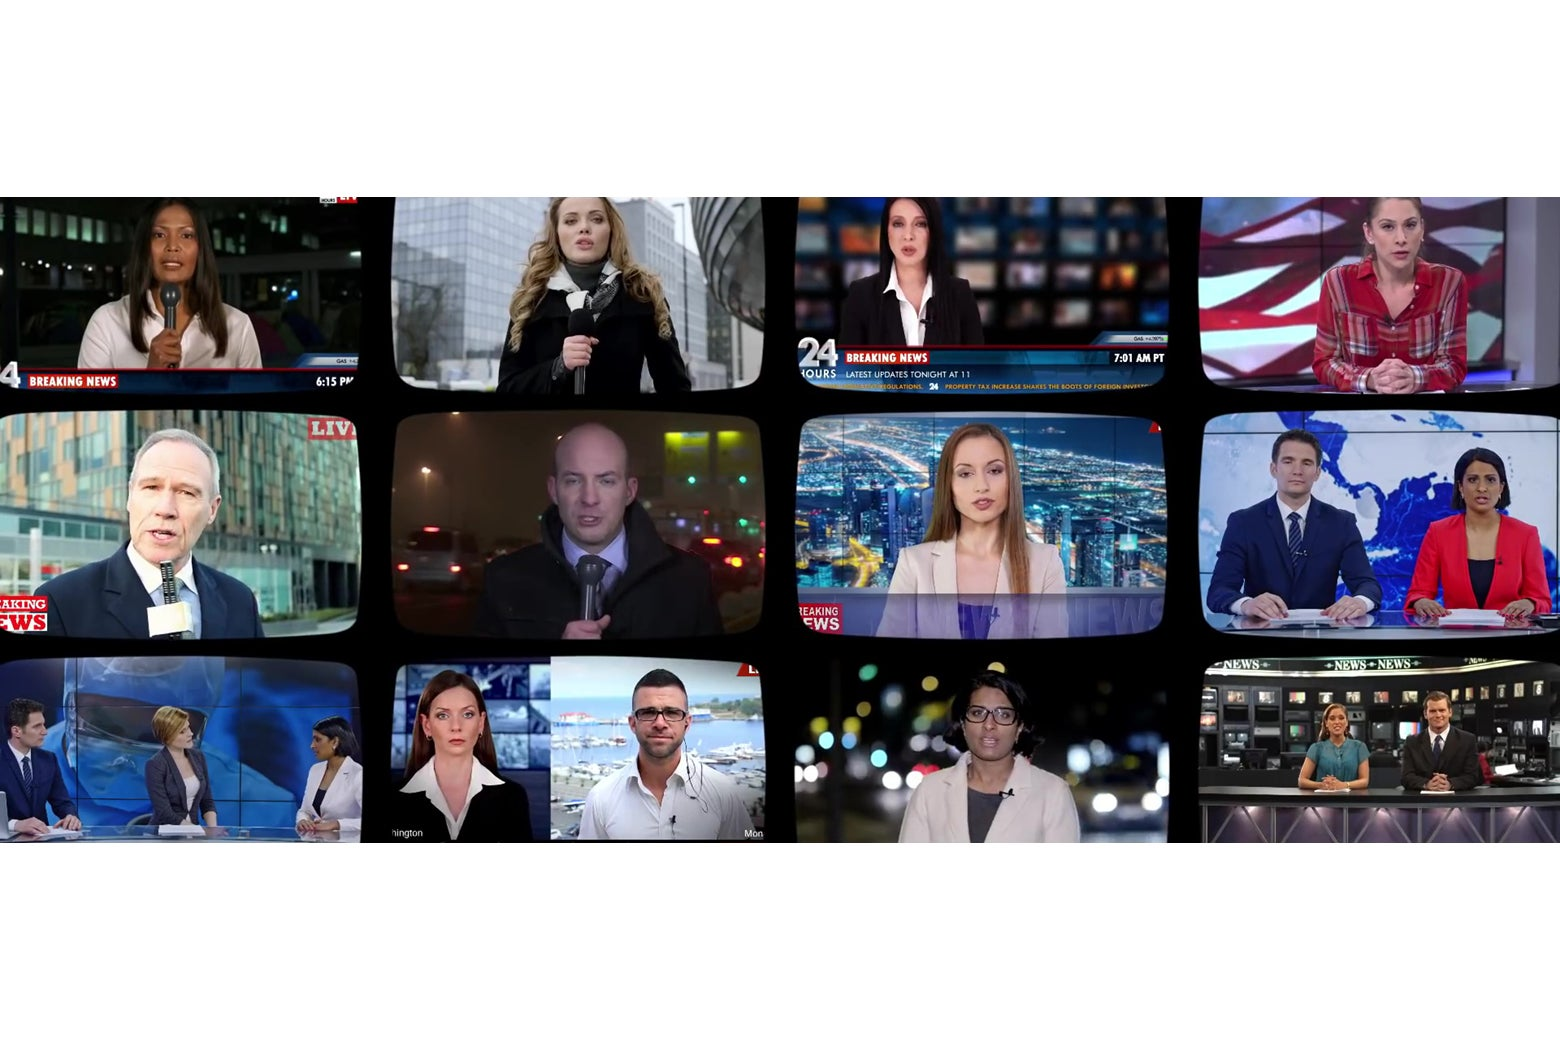 A shot from a Gillette ad of a wall of TVs showing news anchors.